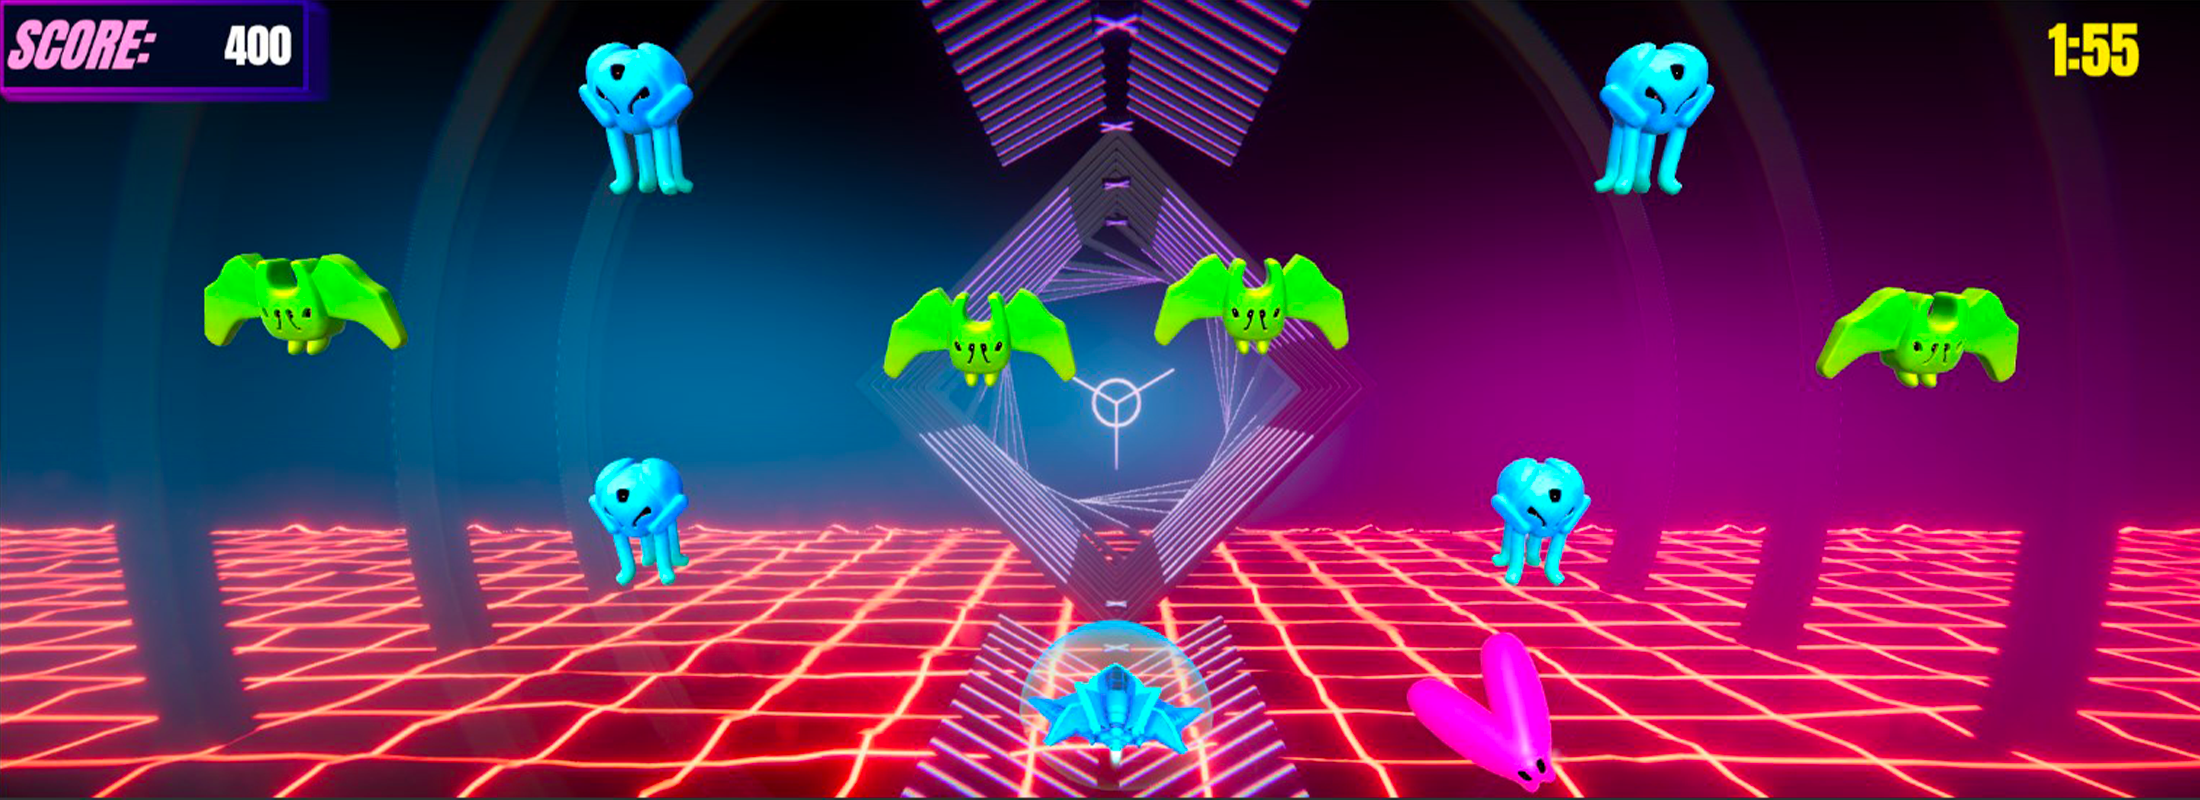 Neon voyager gameplay picture 2